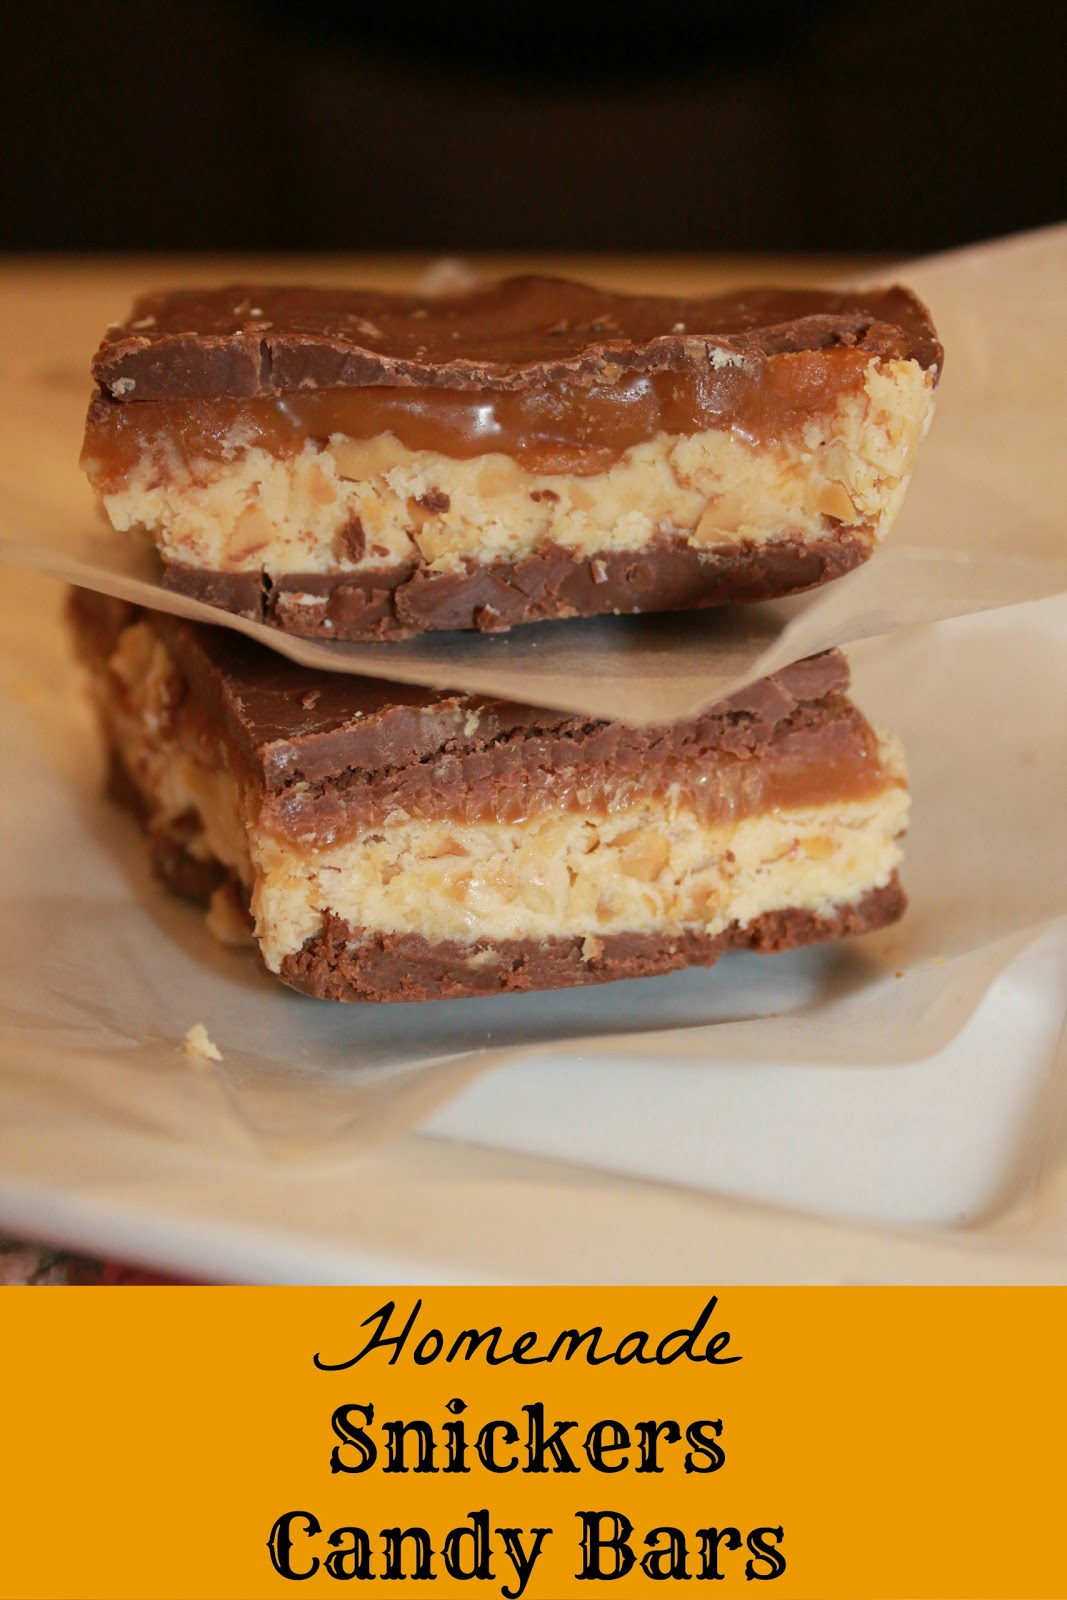 Ally's Sweet and Savory Eats: Homemade Snickers Candy Bars